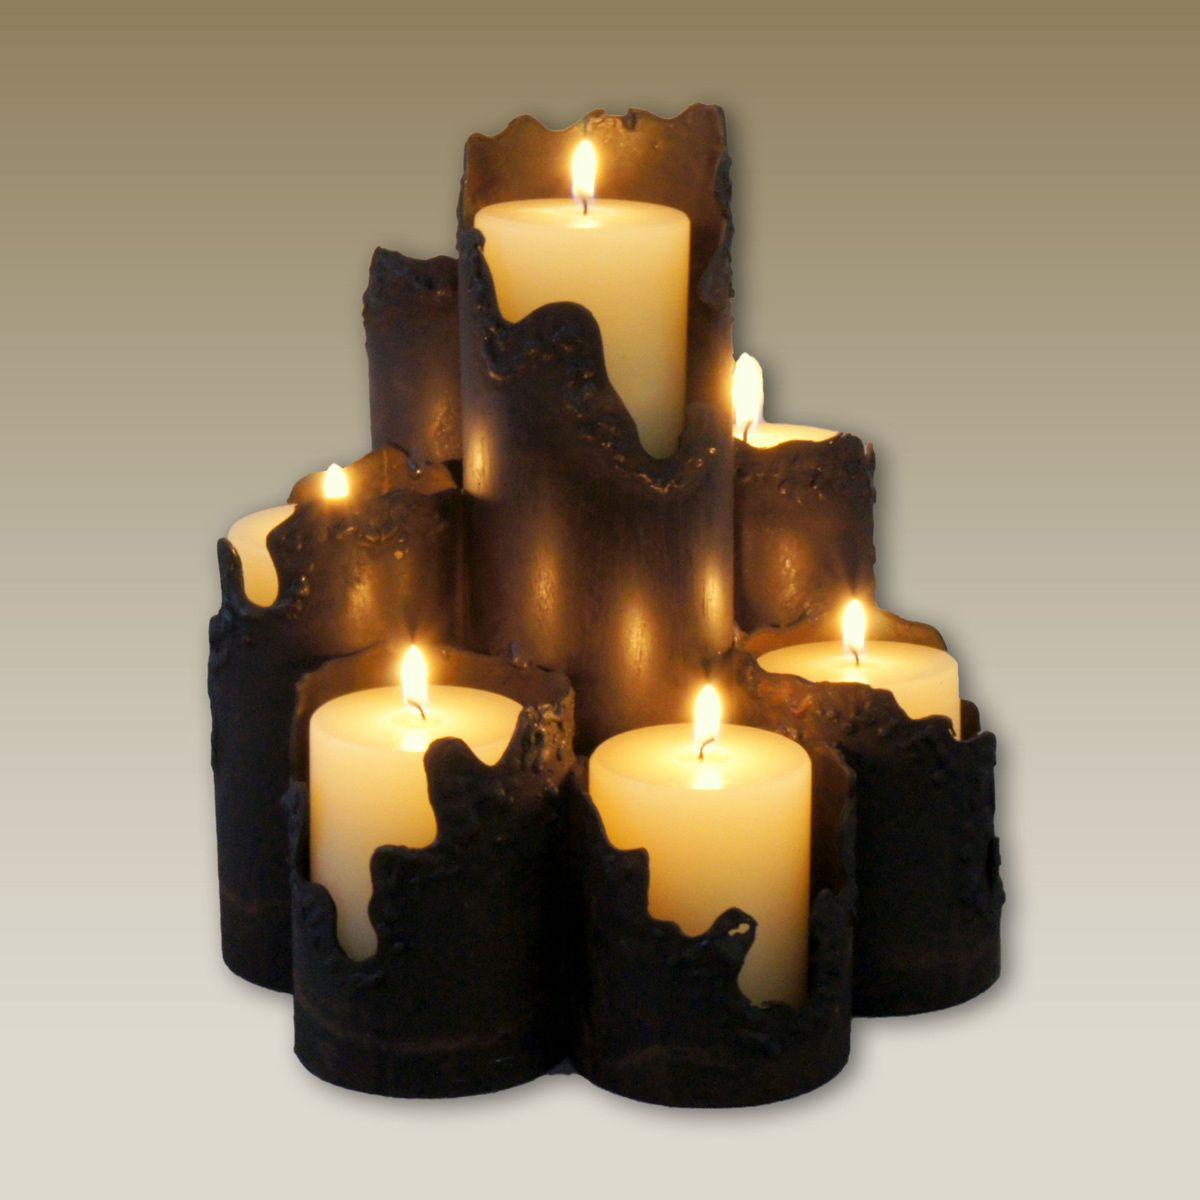 Torn Edge Metal Candle Holder - 7 Candles